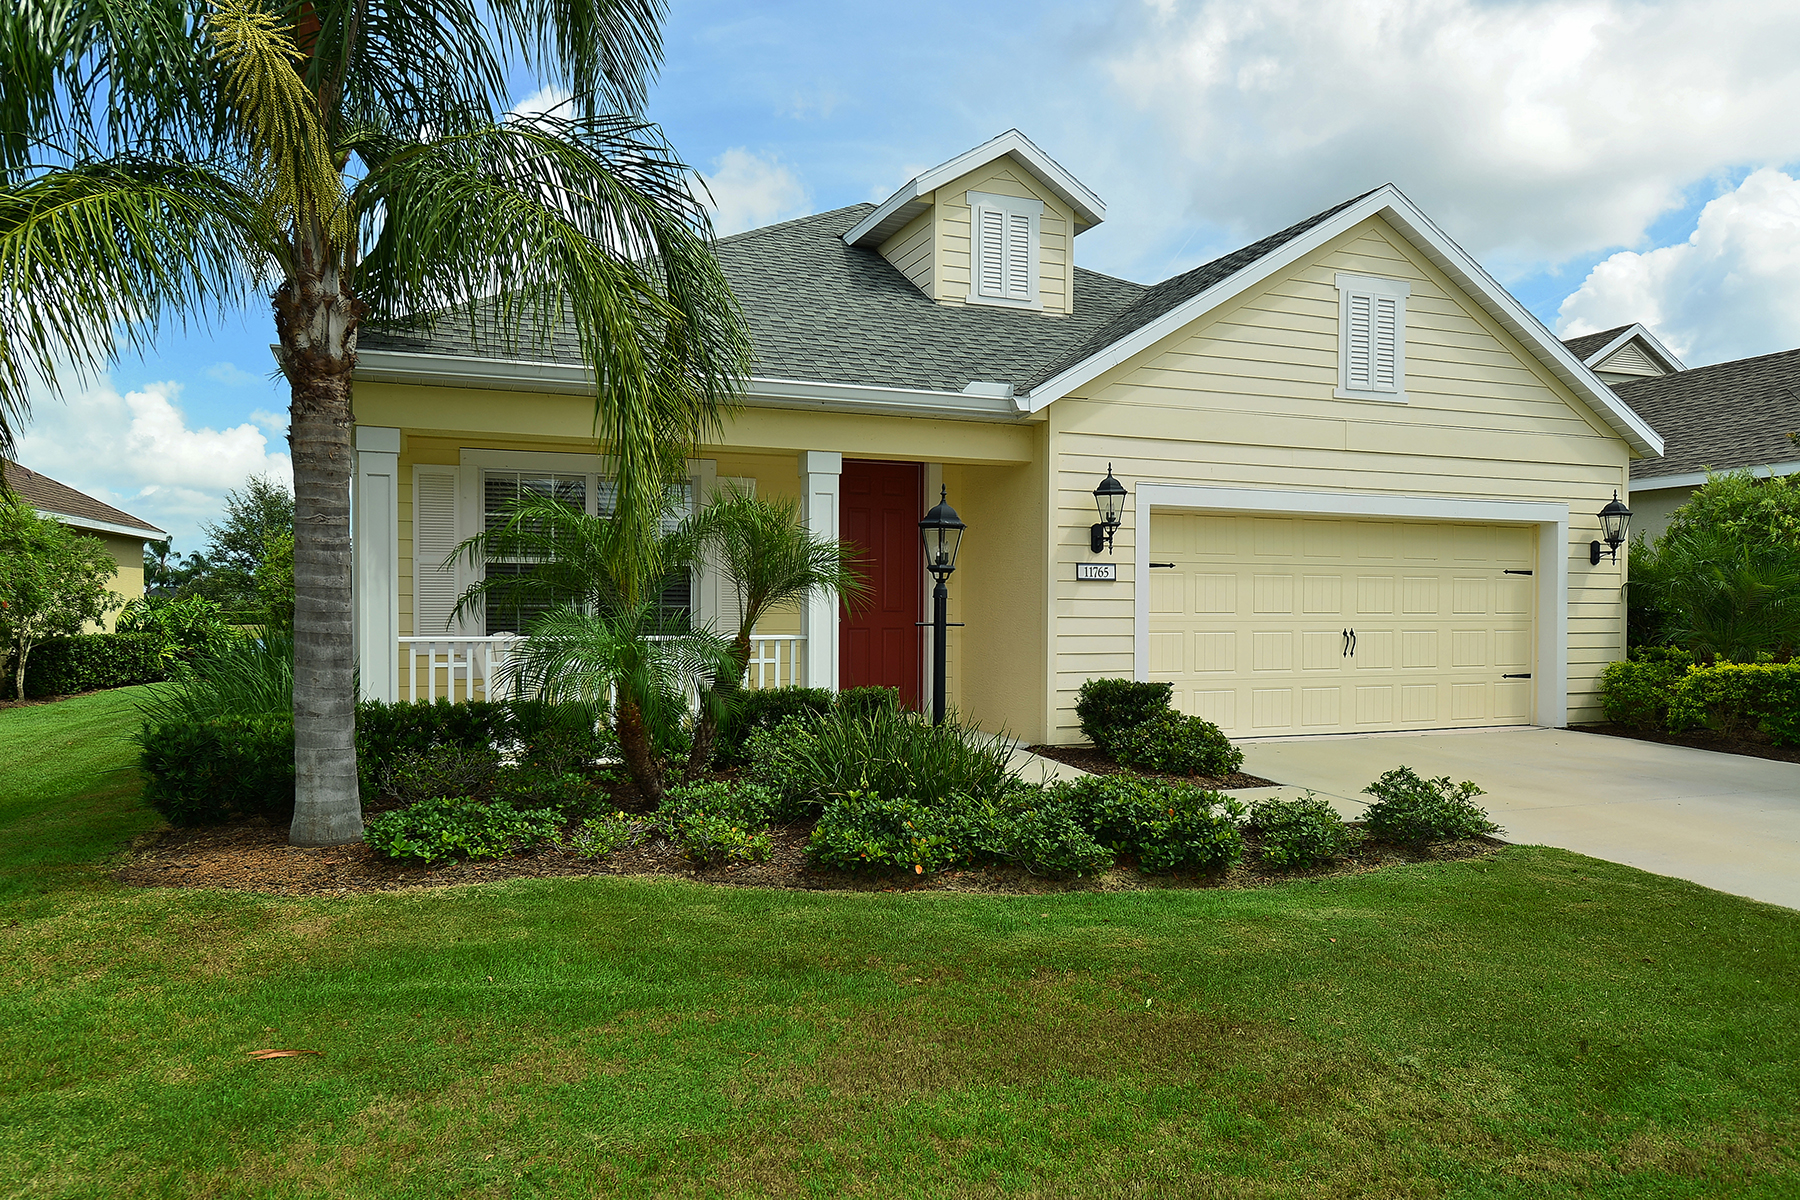 Single Family Home for Sale at CENTRAL PARK 11765 Forest Park Cir Bradenton, Florida 34211 United States